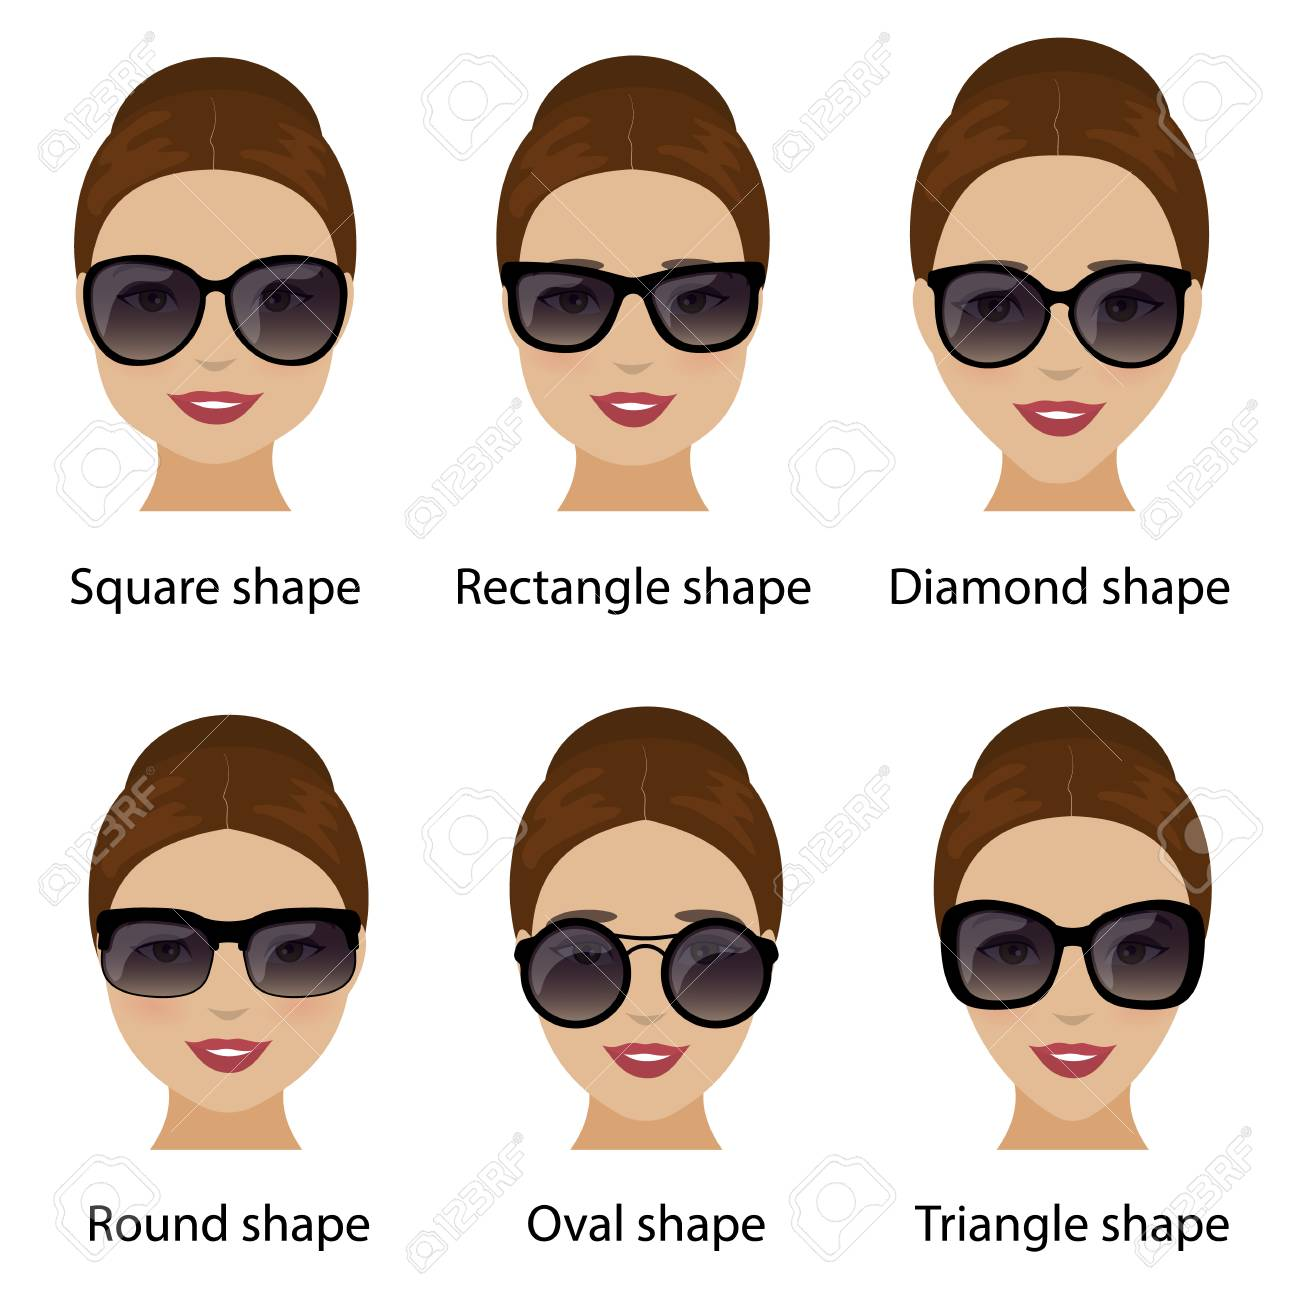 71e2be2e54 Vector. Spectacle frames shapes and different types of women face shapes.  Face types as oval